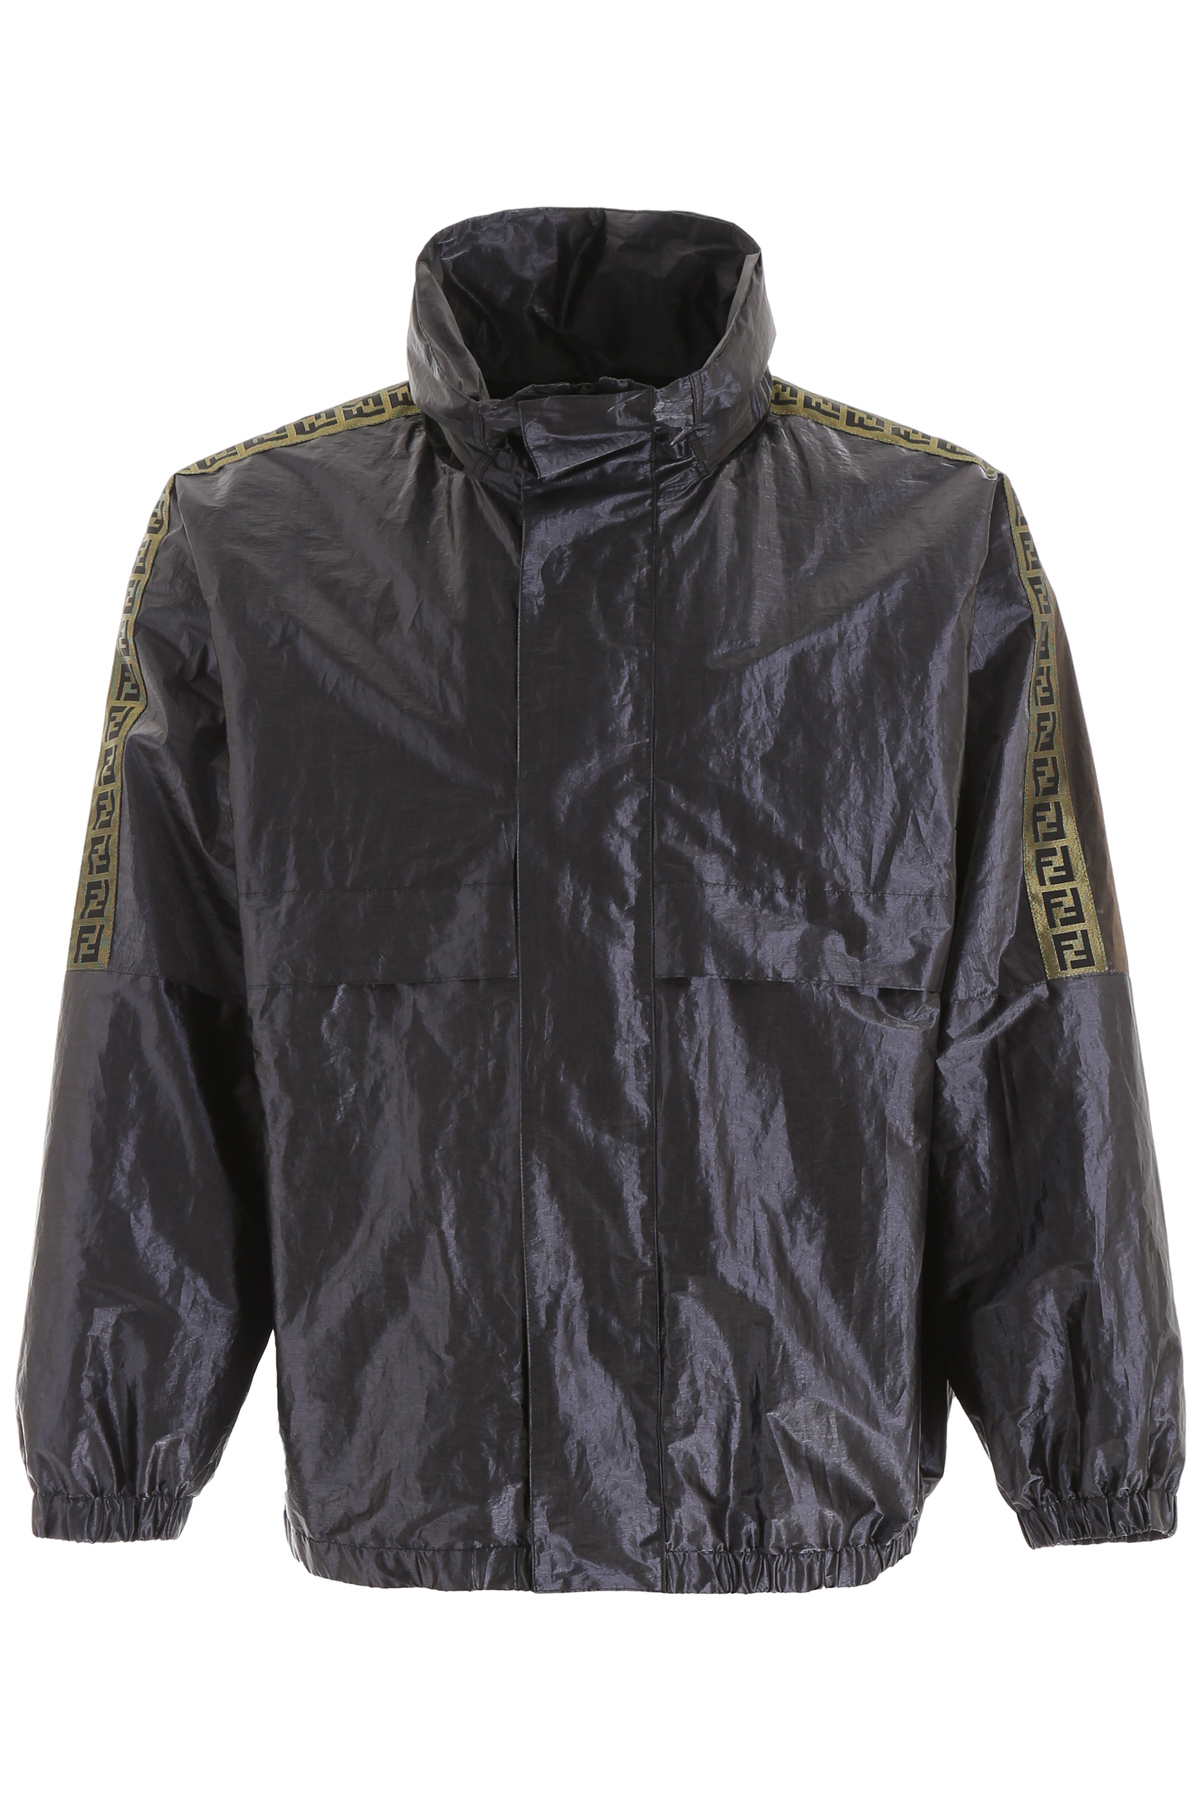 FENDI METALLIC WINDBREAKER WITH FF BANDS 48 Gold, Silver, Grey Technical